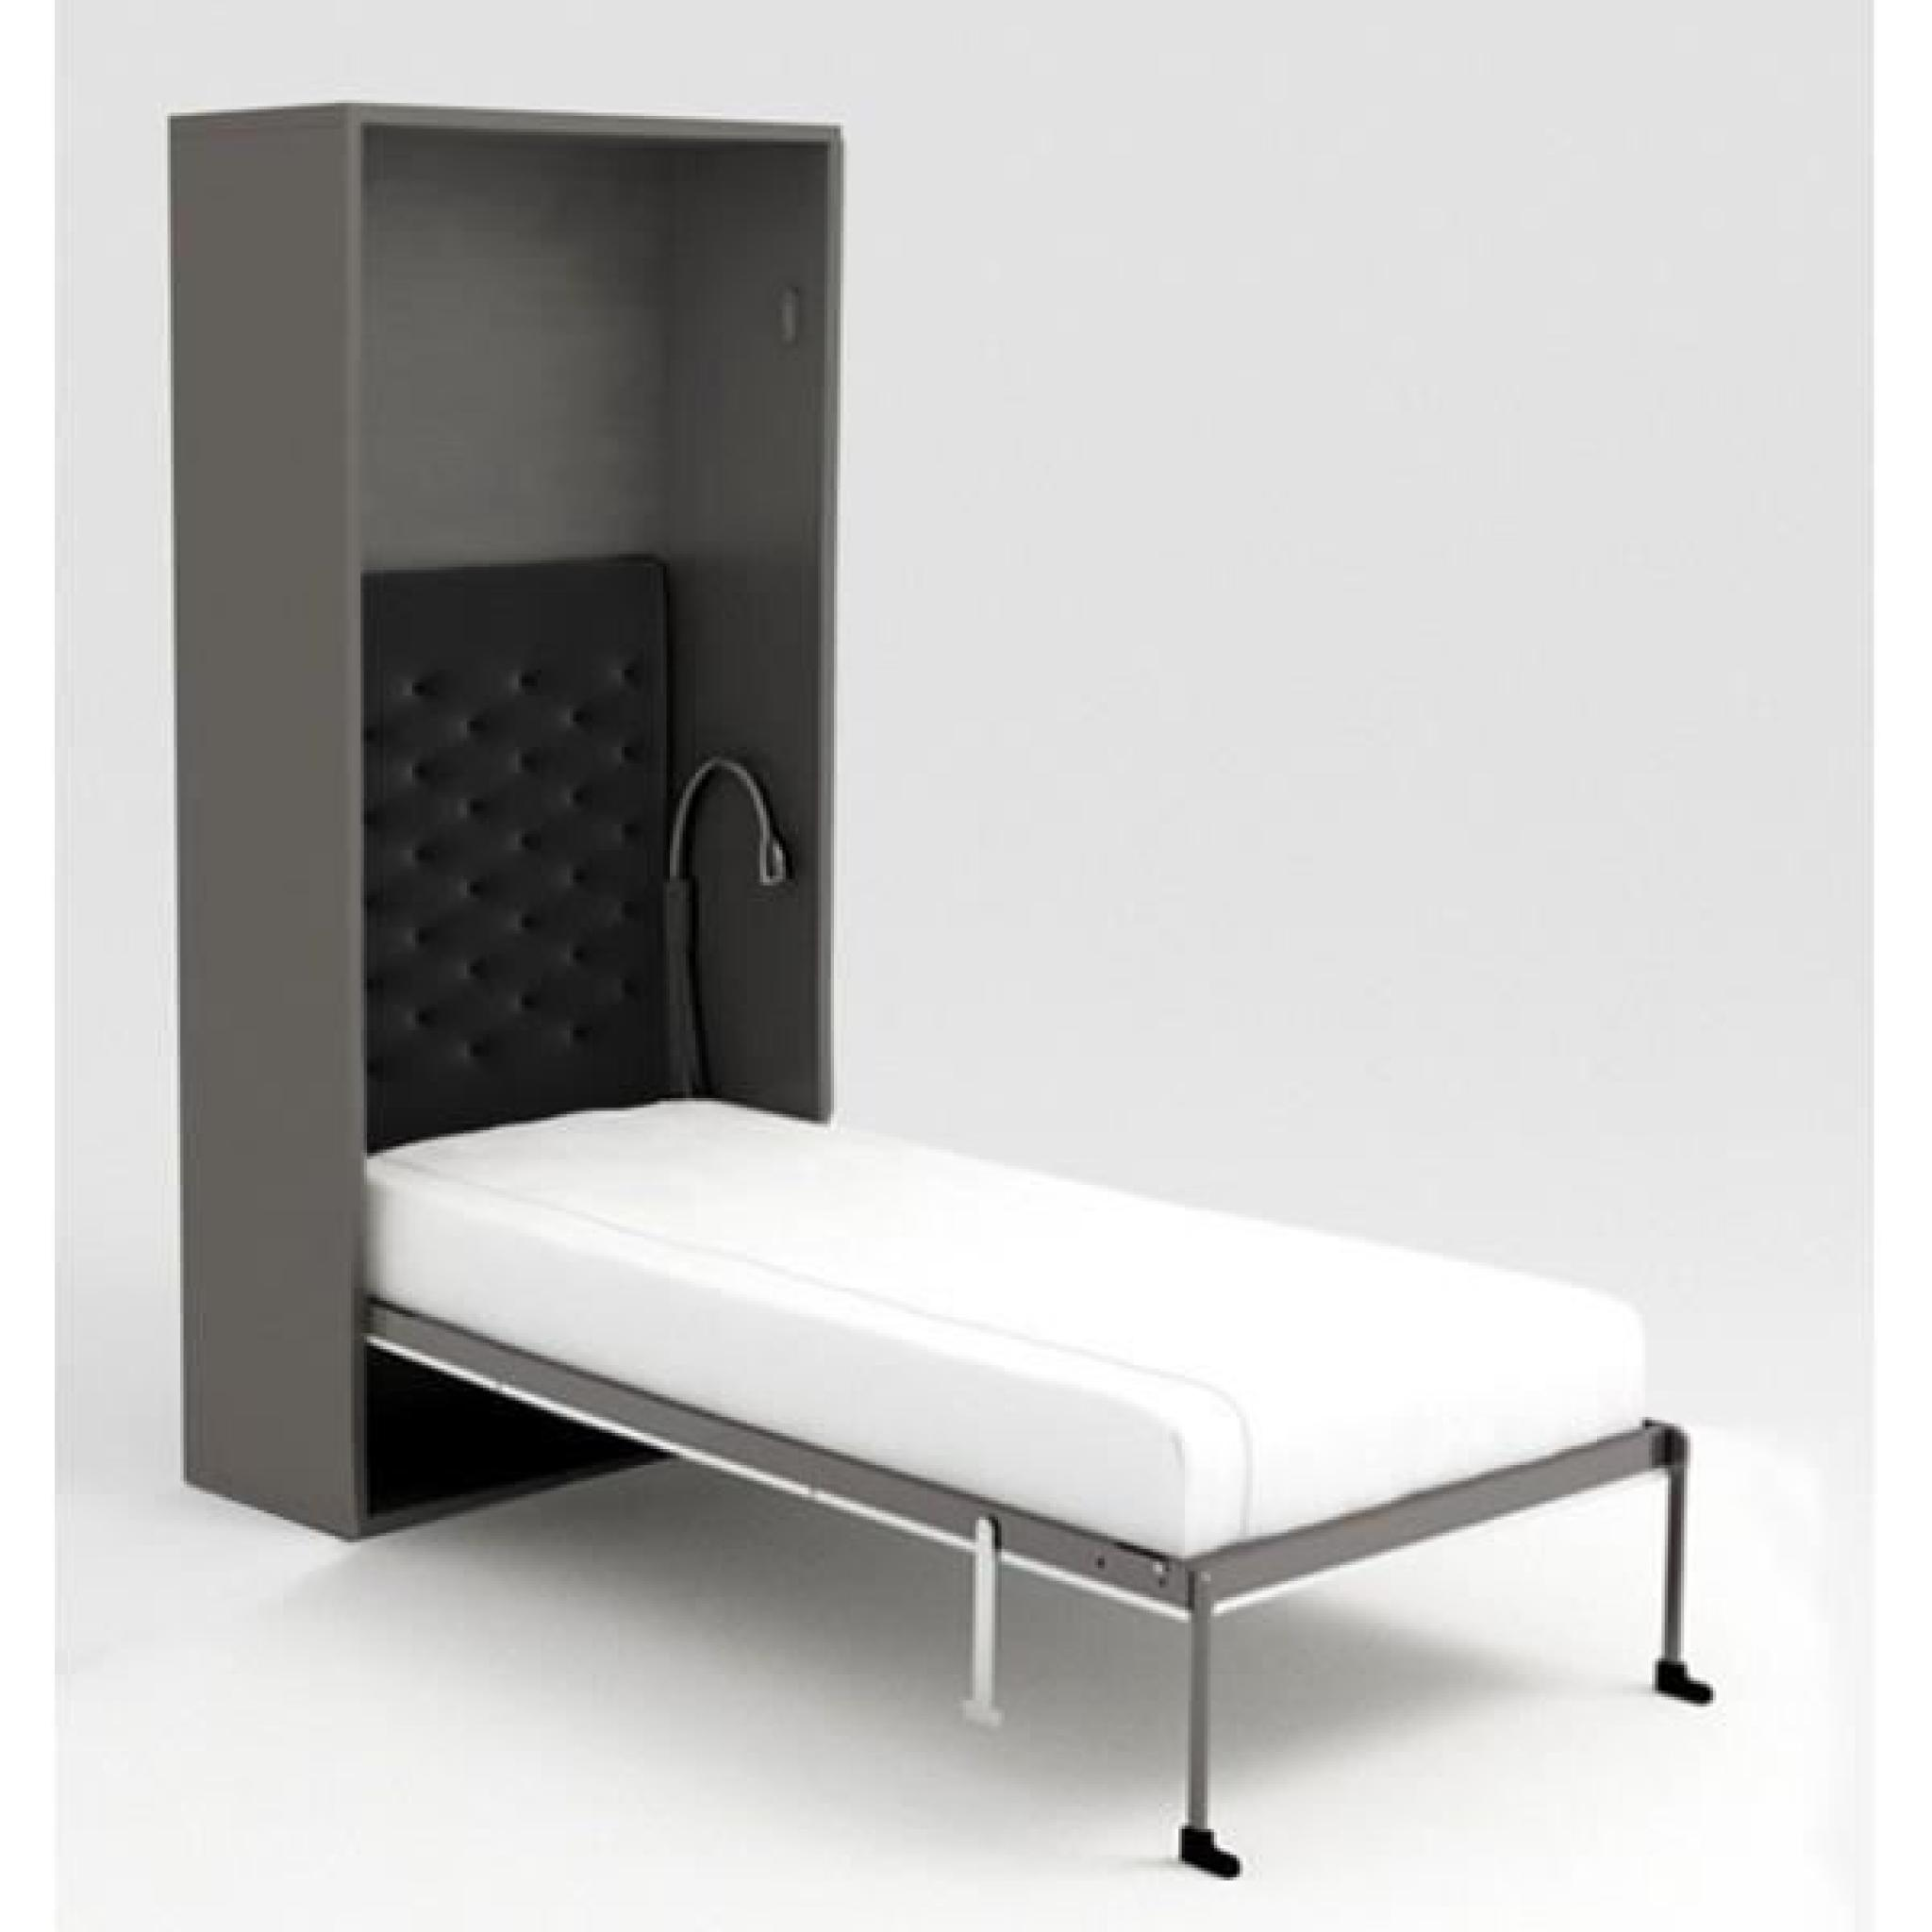 armoire lit escamotable stone 90x200 gris achat vente. Black Bedroom Furniture Sets. Home Design Ideas